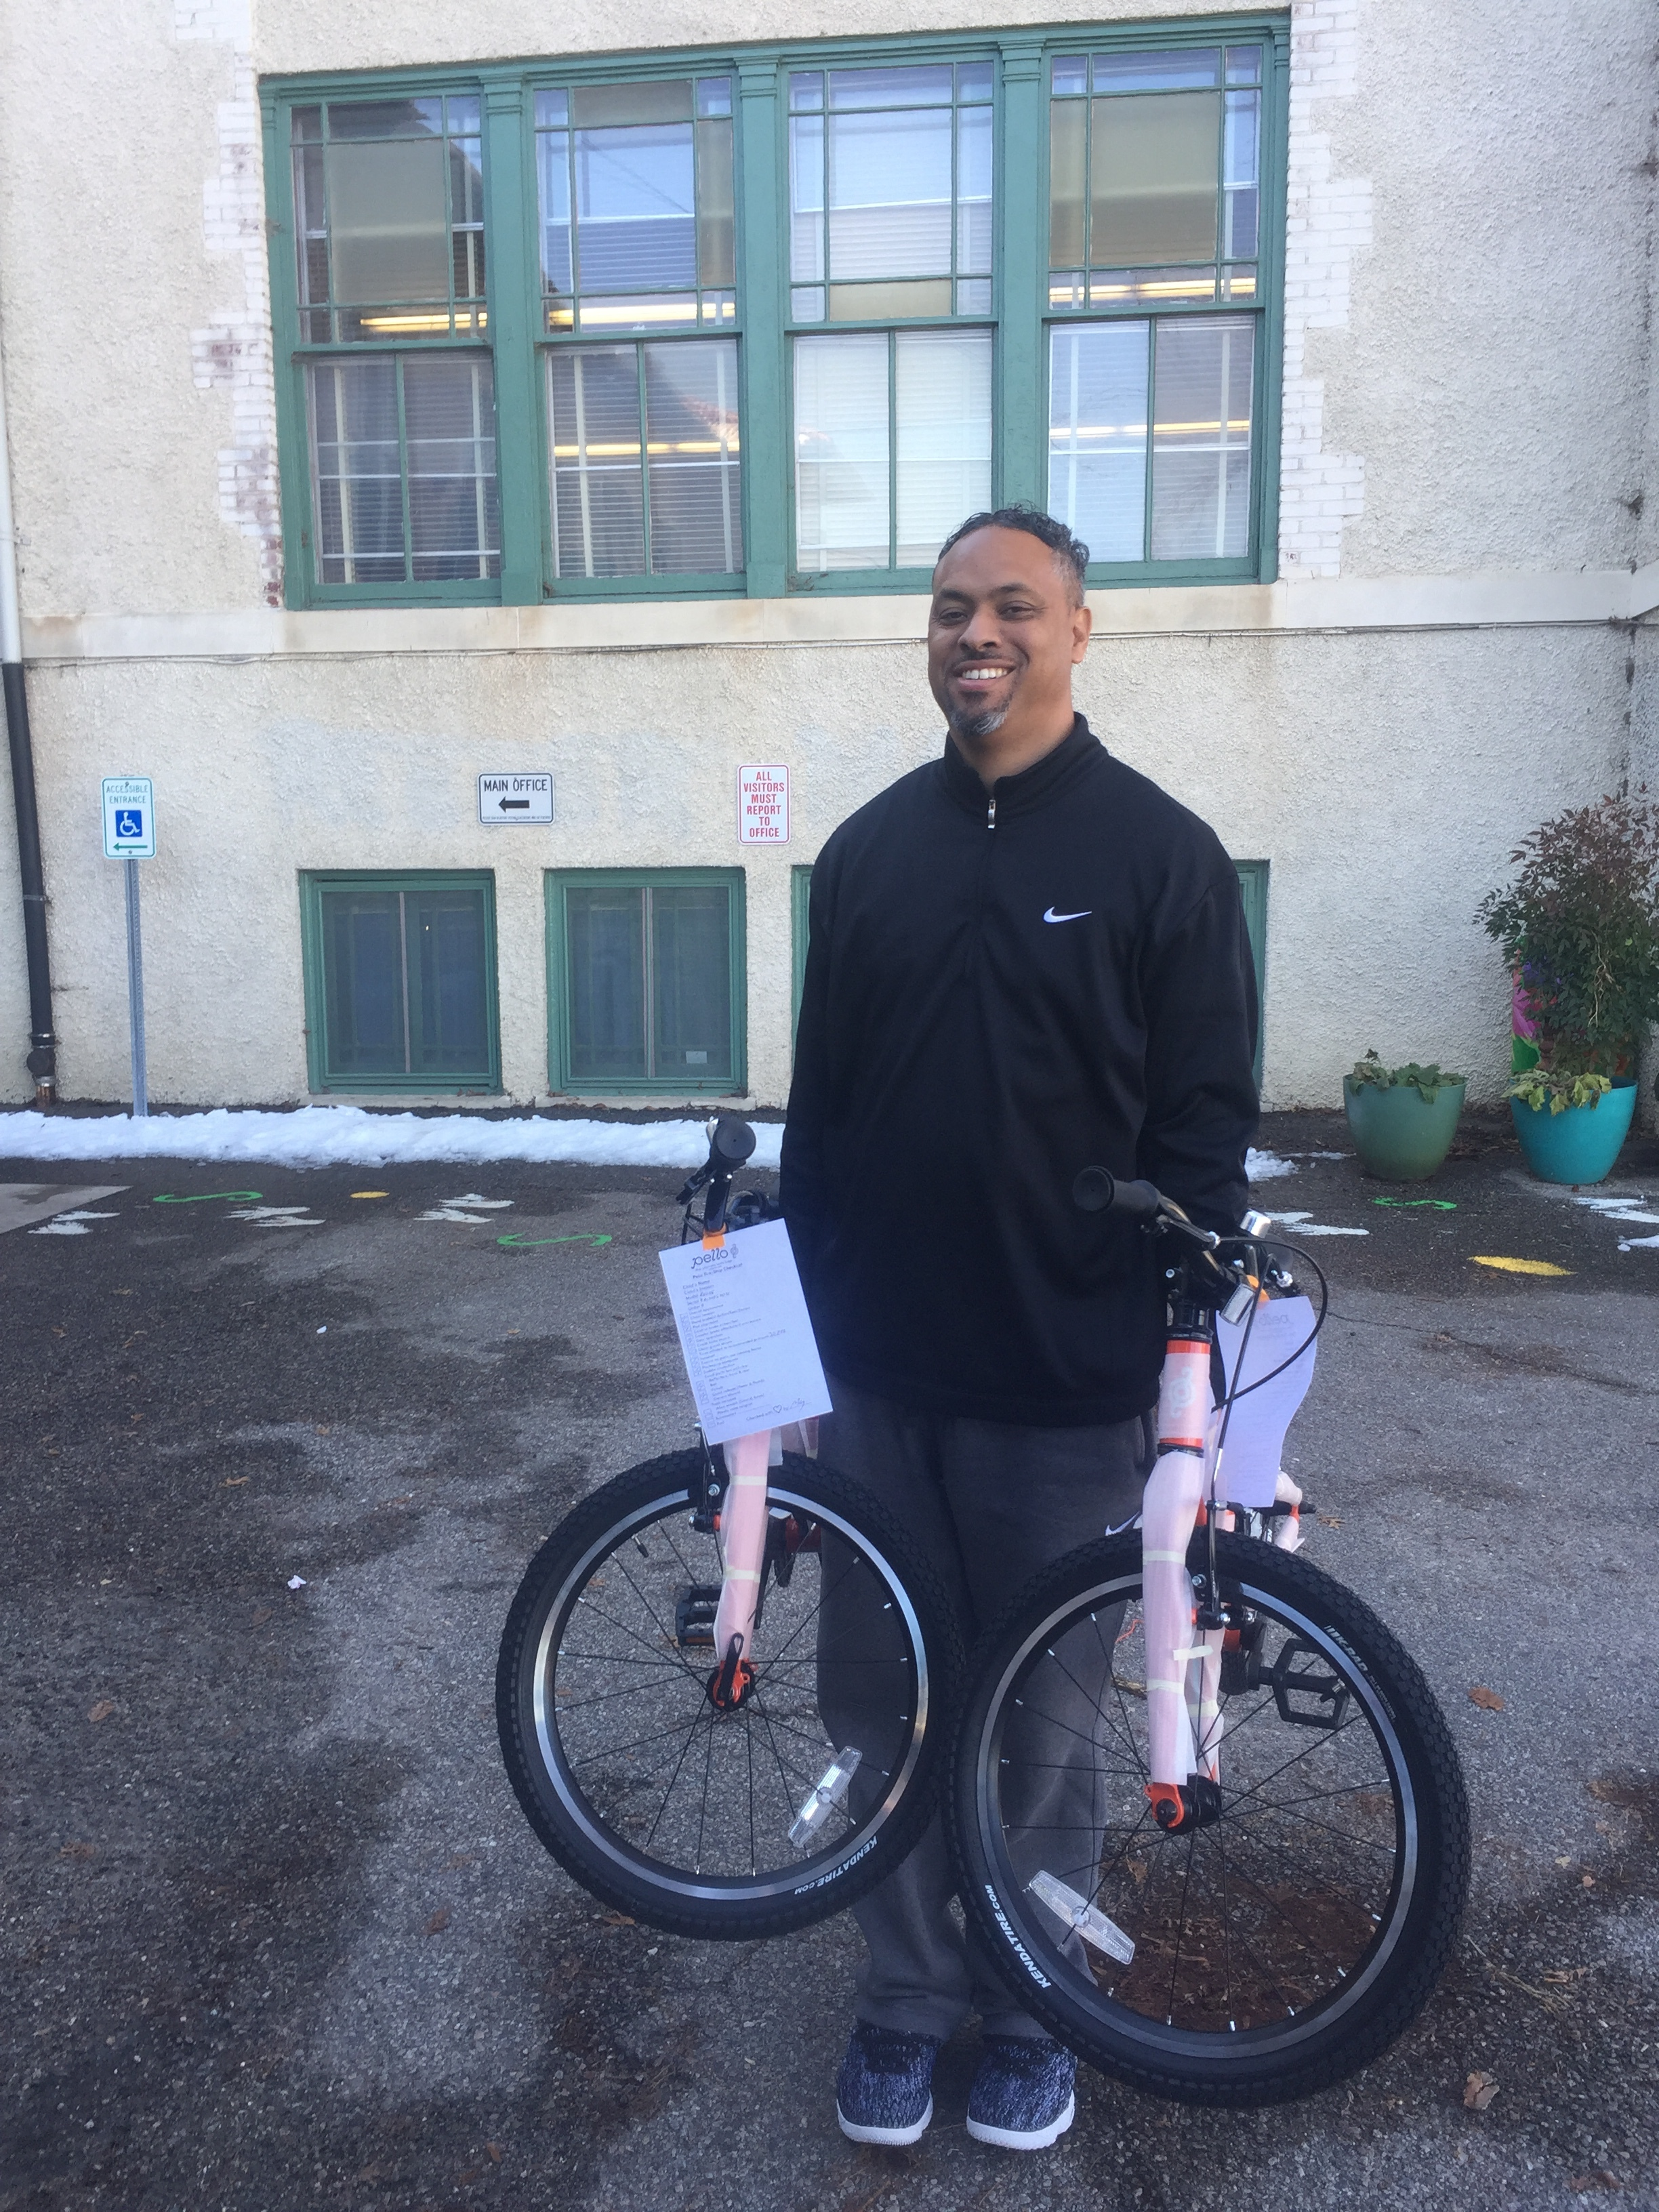 This is Brent and he now has a full set of bikes to teach children how to ride safely!